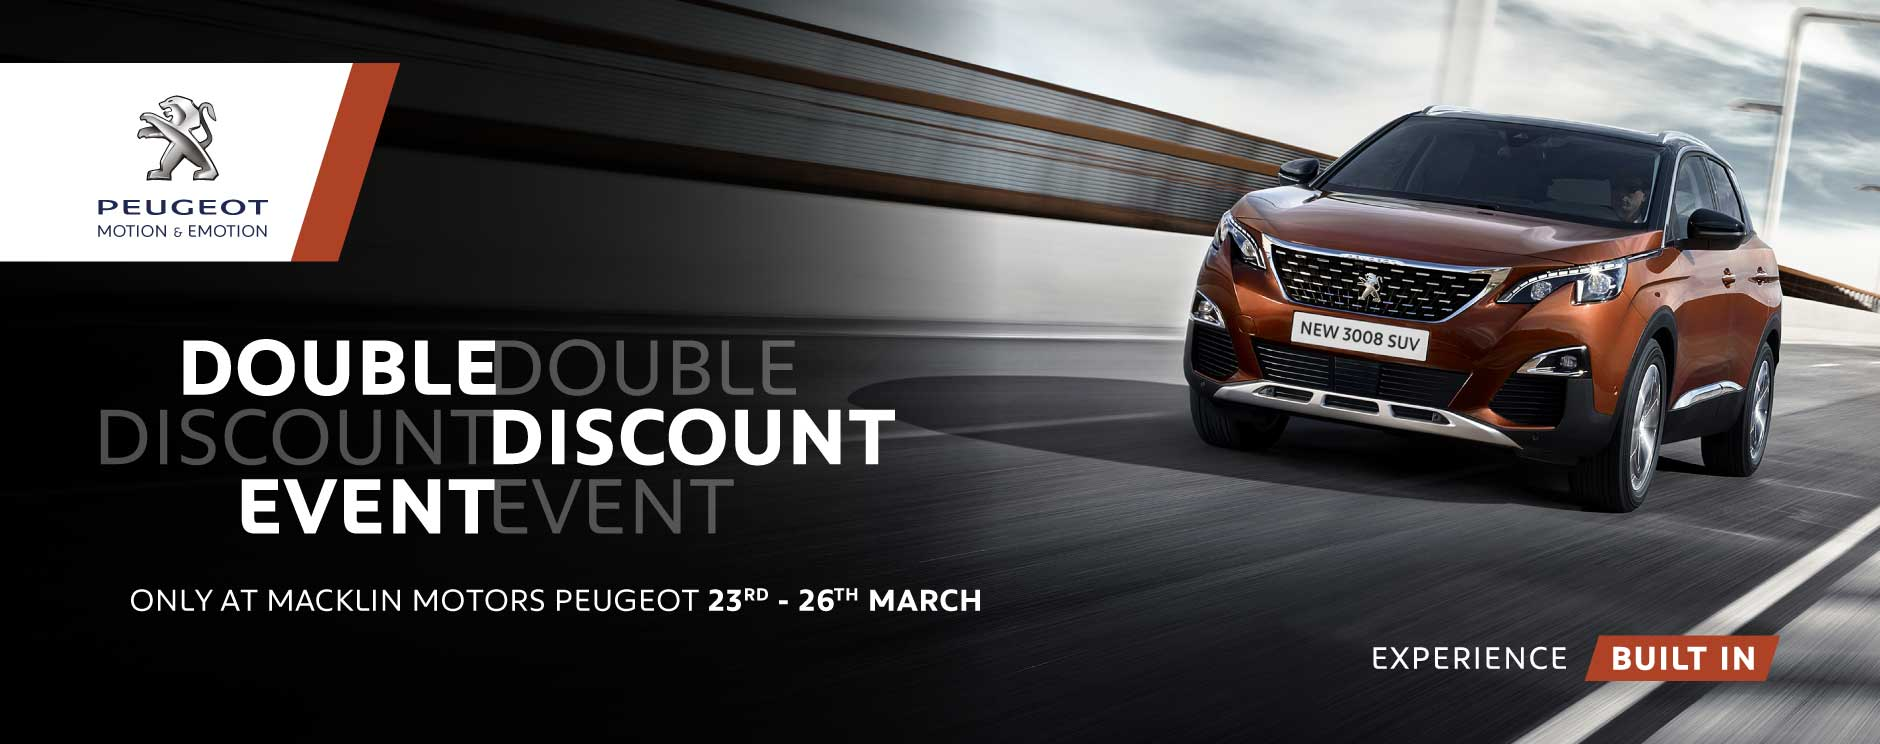 Peugeot double discount event banner